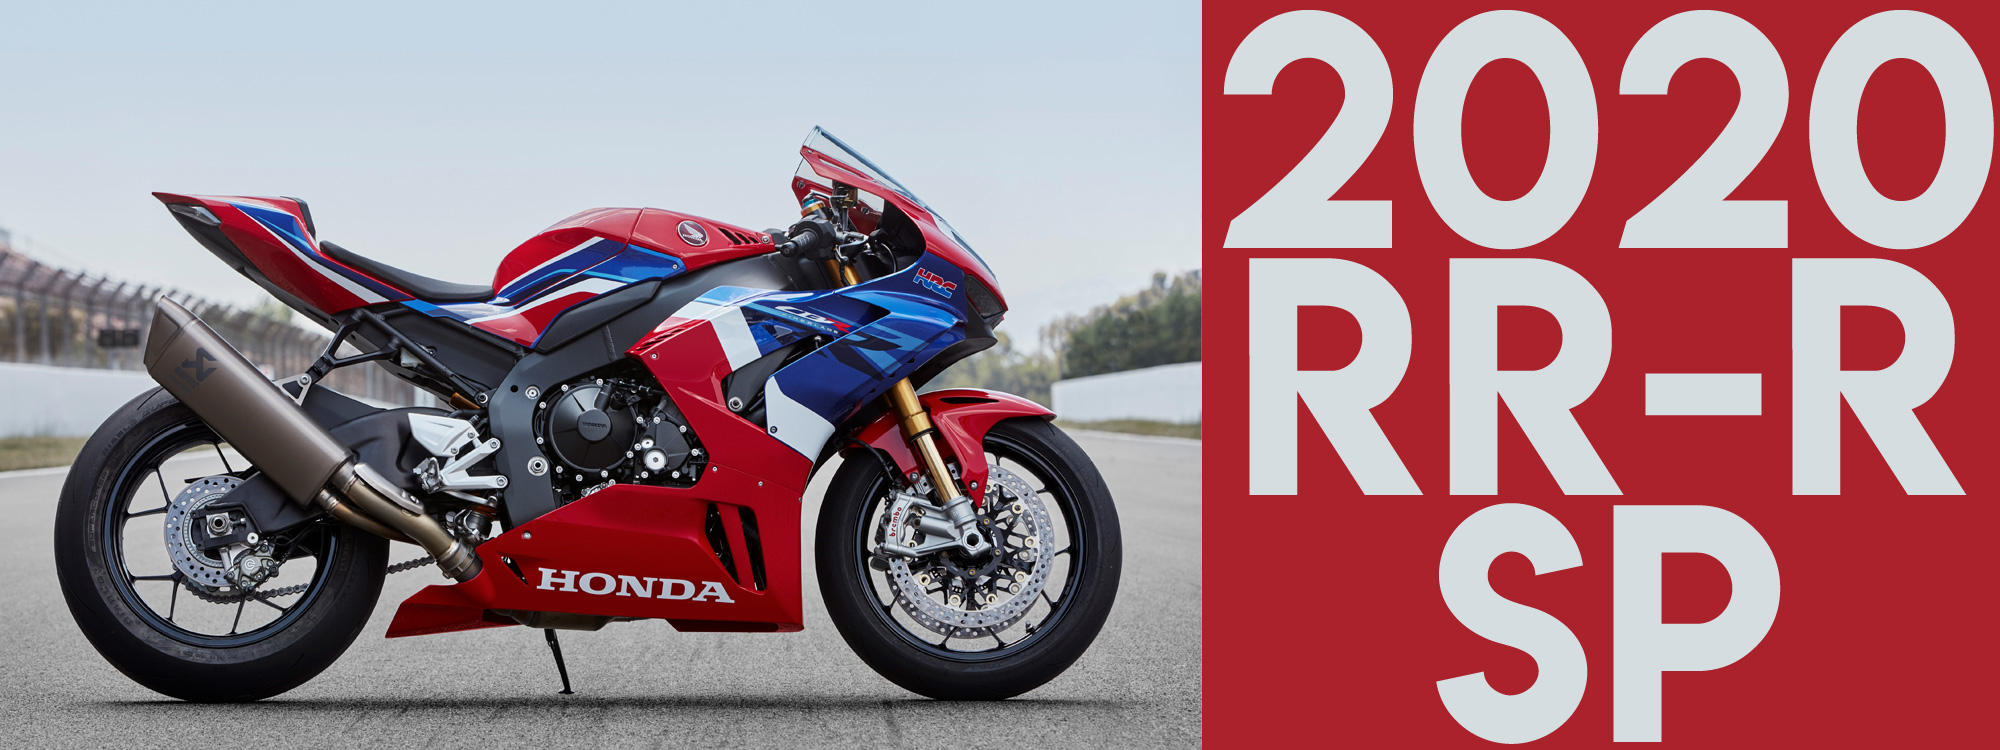 Honda CBR1000RR-R SP 2020 Specs and Pricing track